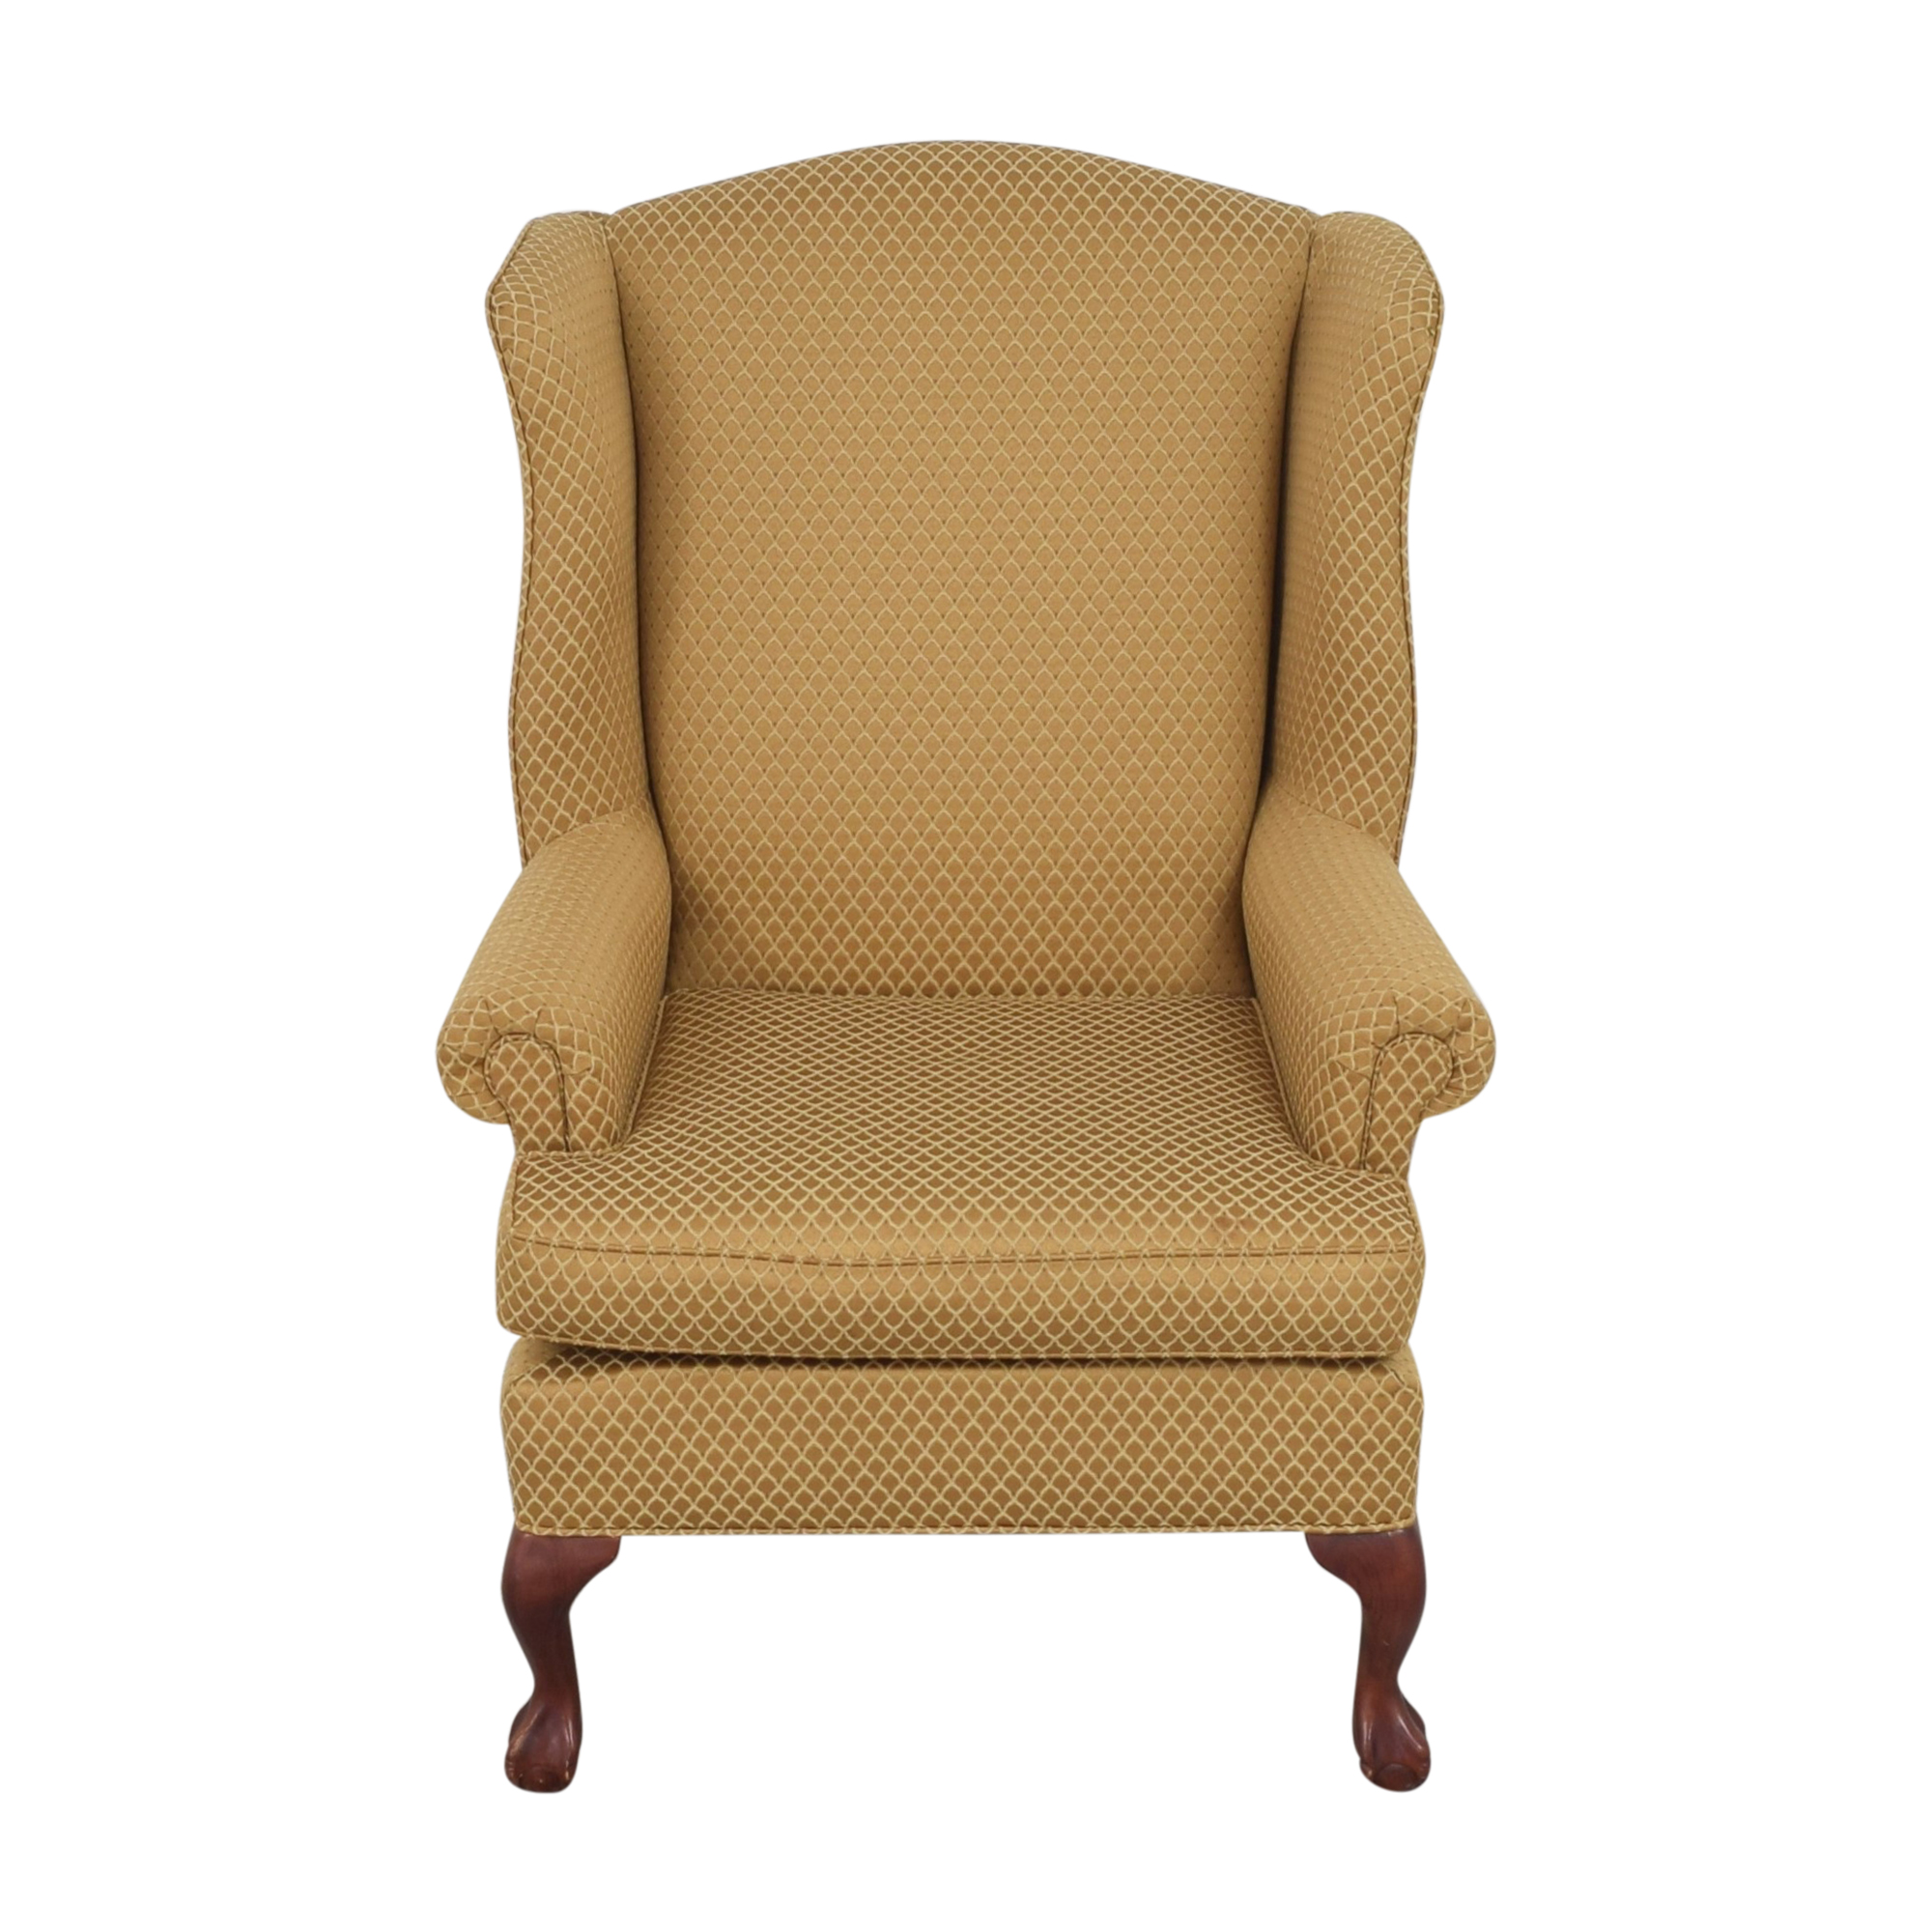 Best Chairs Best Chairs Wingback Chair discount